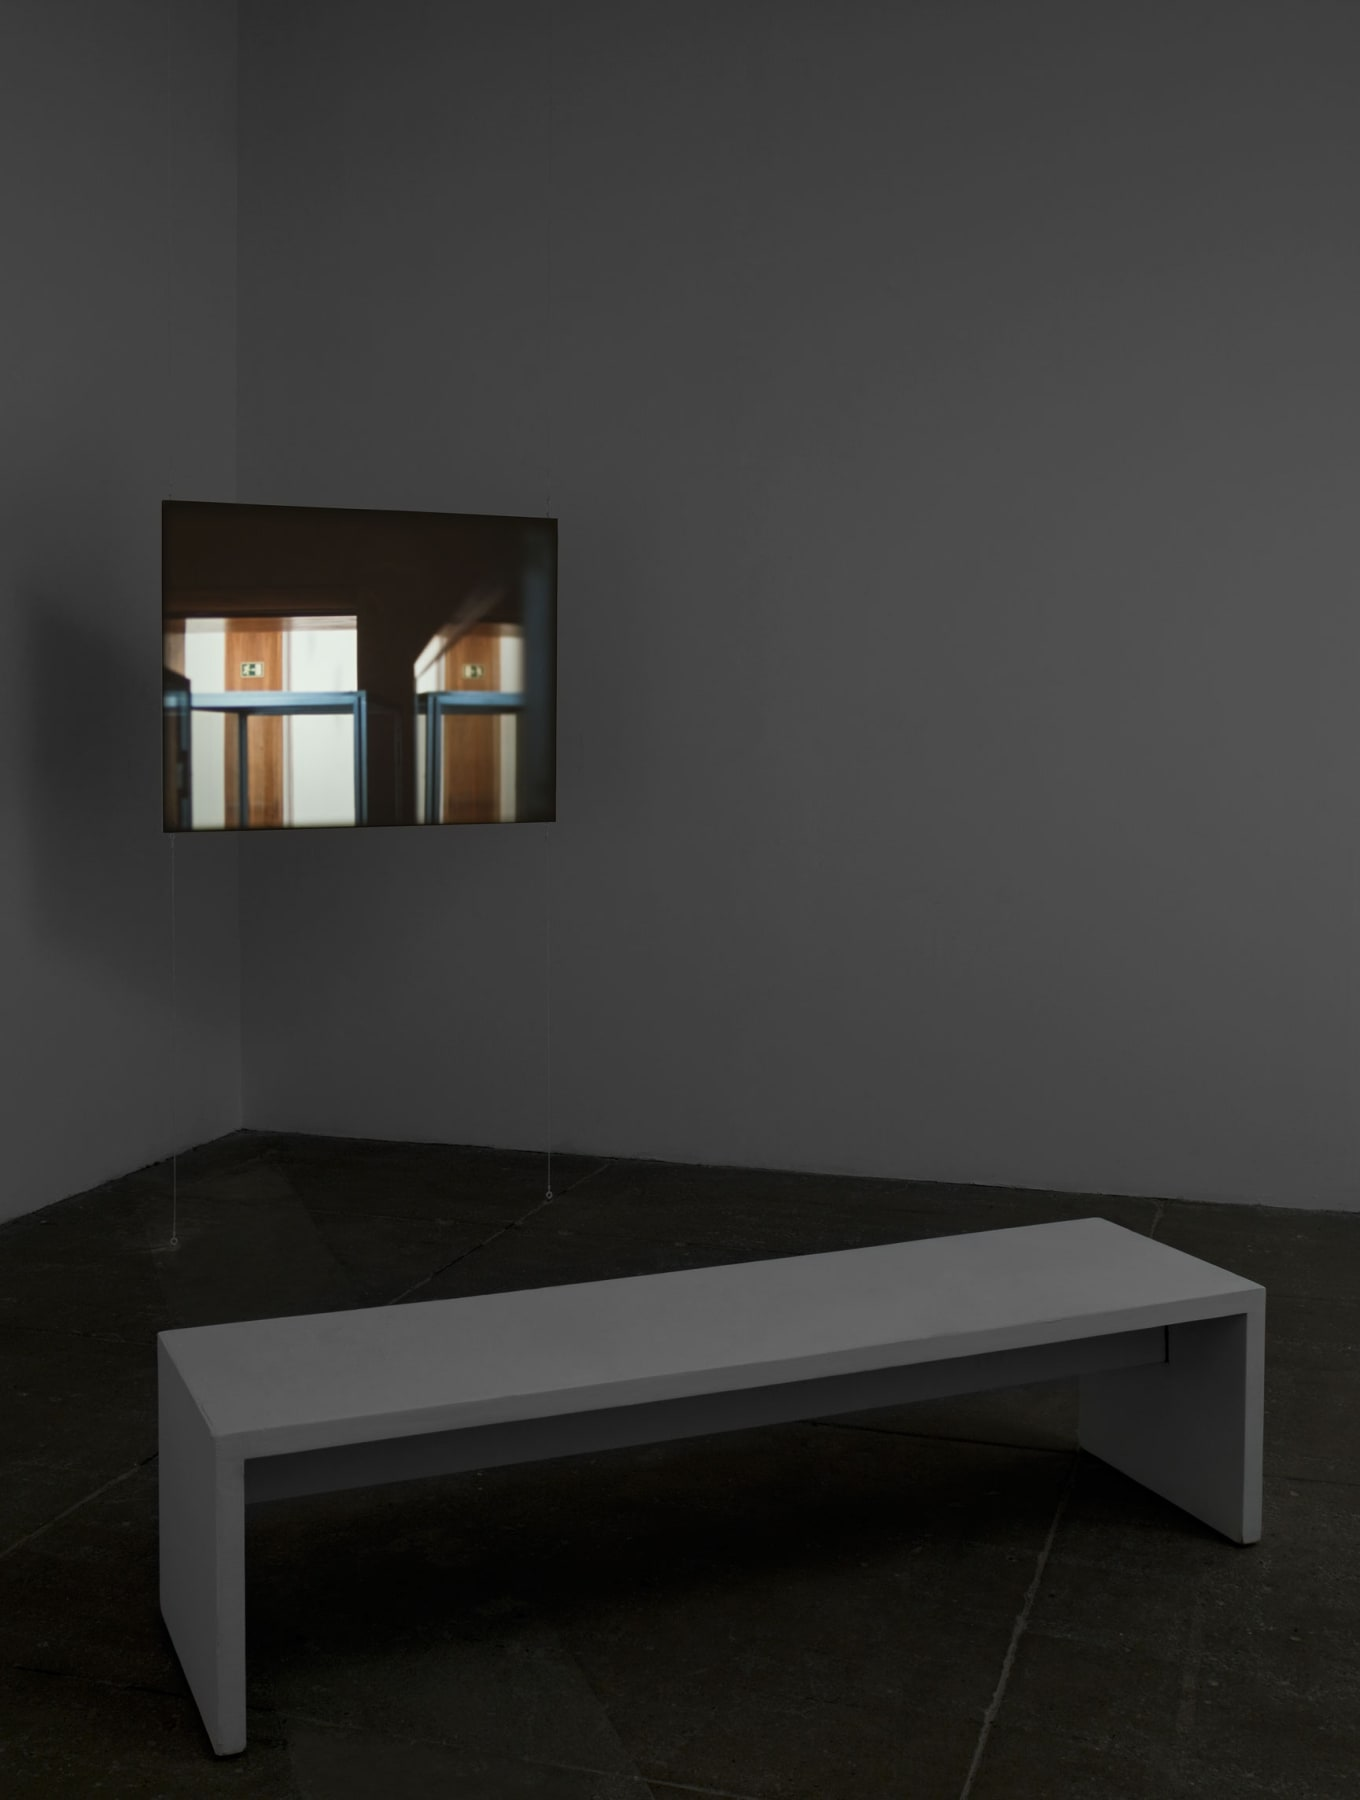 A white bench sits in front of a small screen displaying two doors illuminated by rays of light.